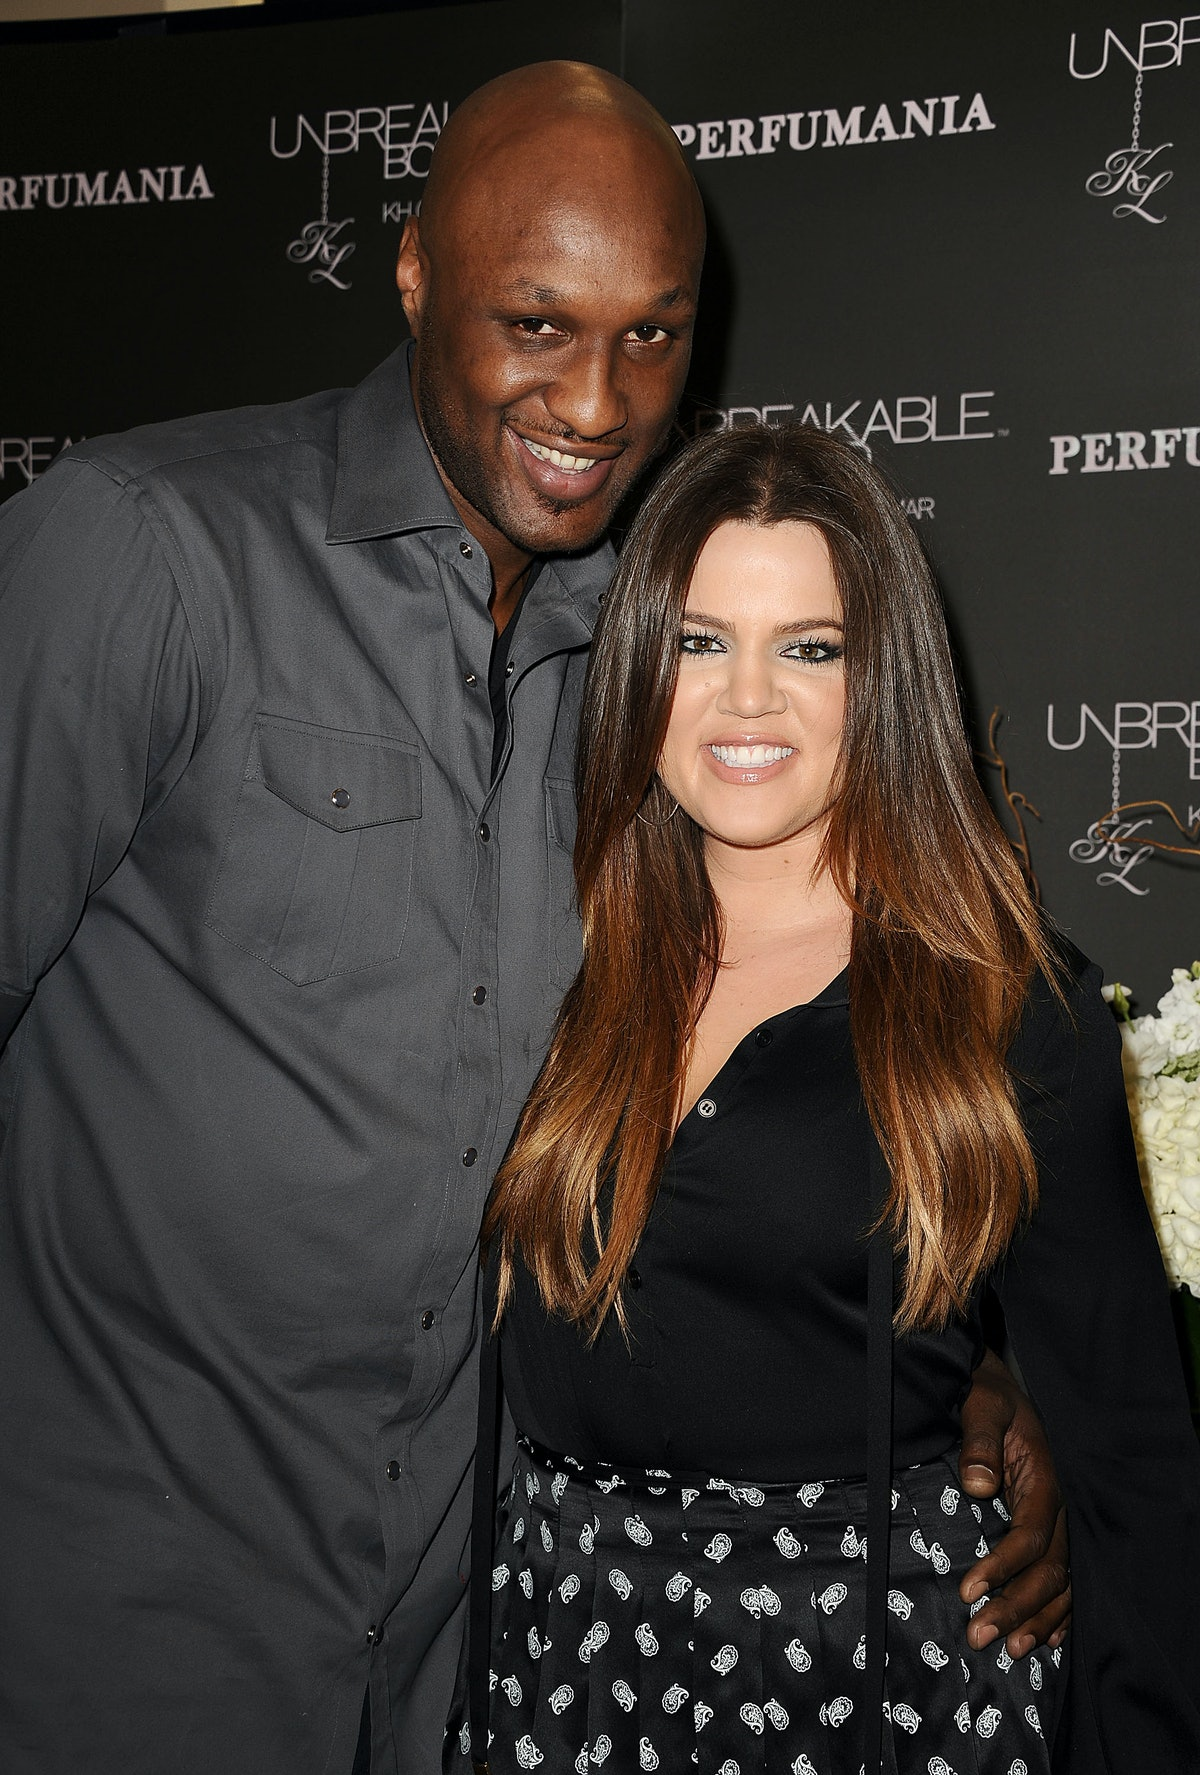 Tristan Thompson shaded Lamar Odom in Khloé Kardashian's IG comments and it was messy.